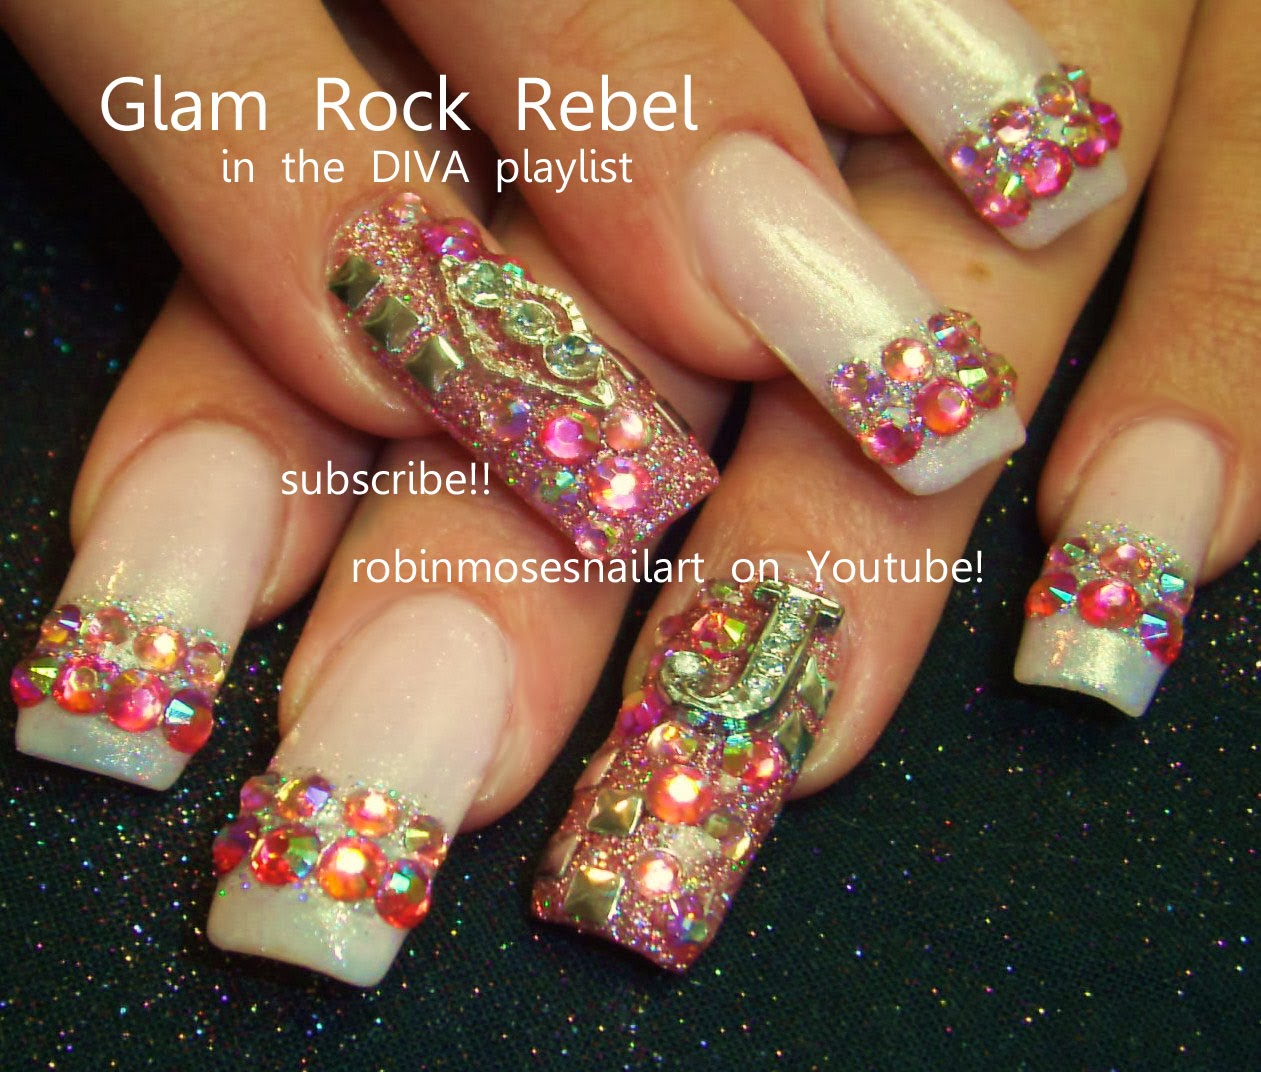 Robin moses nail art november 2013 monday november 25 2013 prinsesfo Image collections